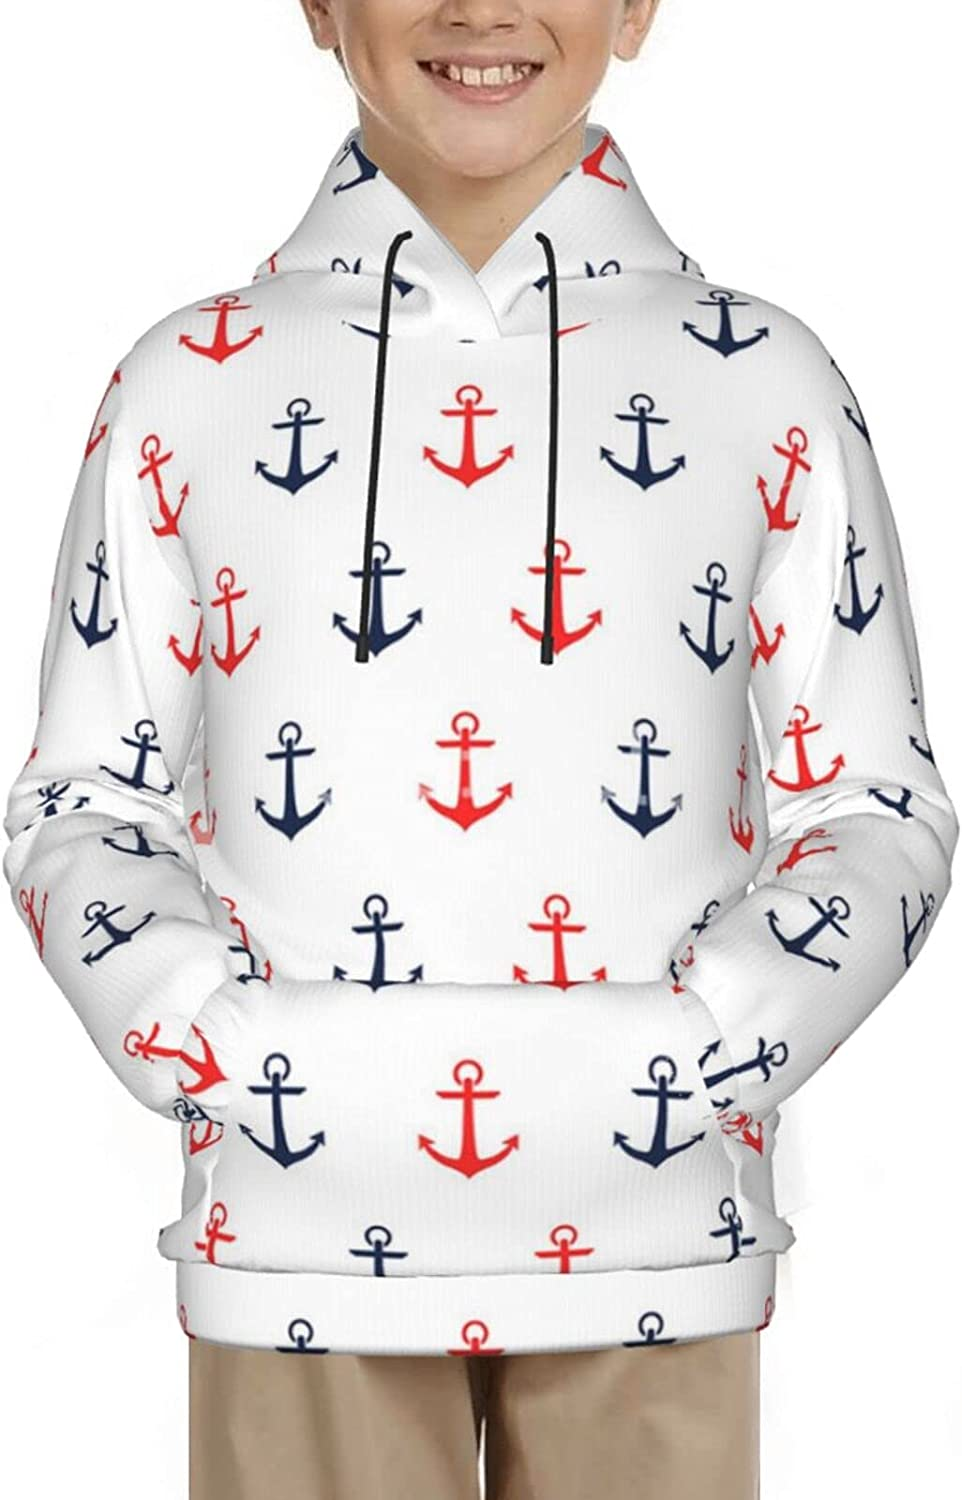 Anchor Pattern Hoodies, Fashion 3D Print Sweatshirts, with Pocket Long Sleeves Pullover, for Boys Girls